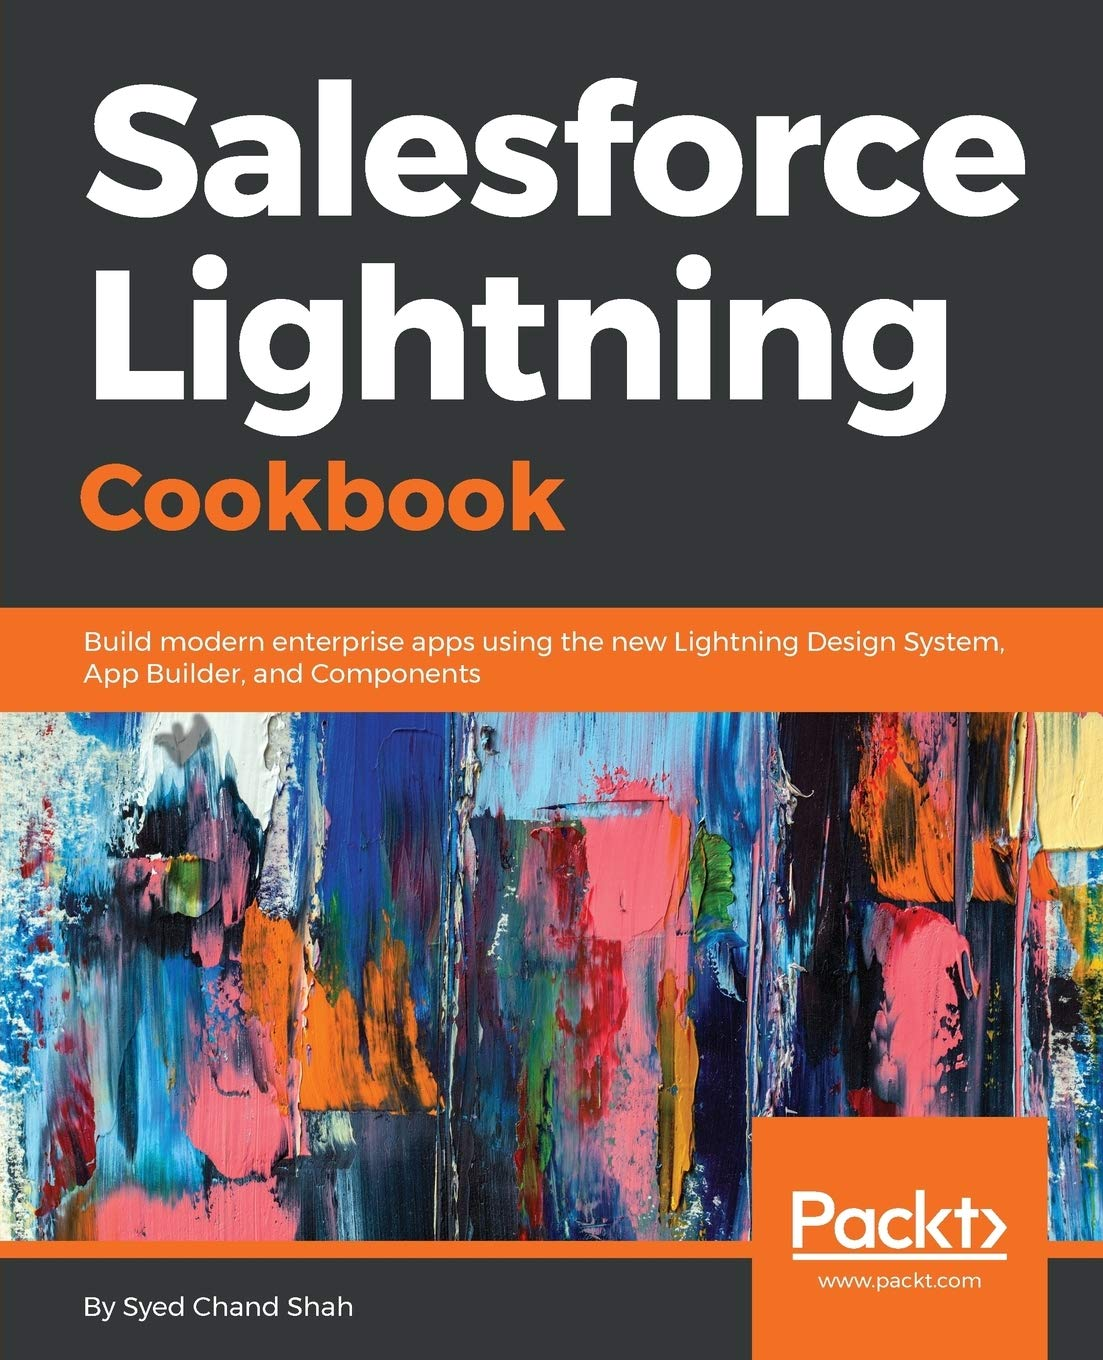 Amazon Com Salesforce Lightning Cookbook Build Modern Enterprise Apps Using The New Lightning Design System App Builder And Components 9781789538250 Shah Syed Chand Books